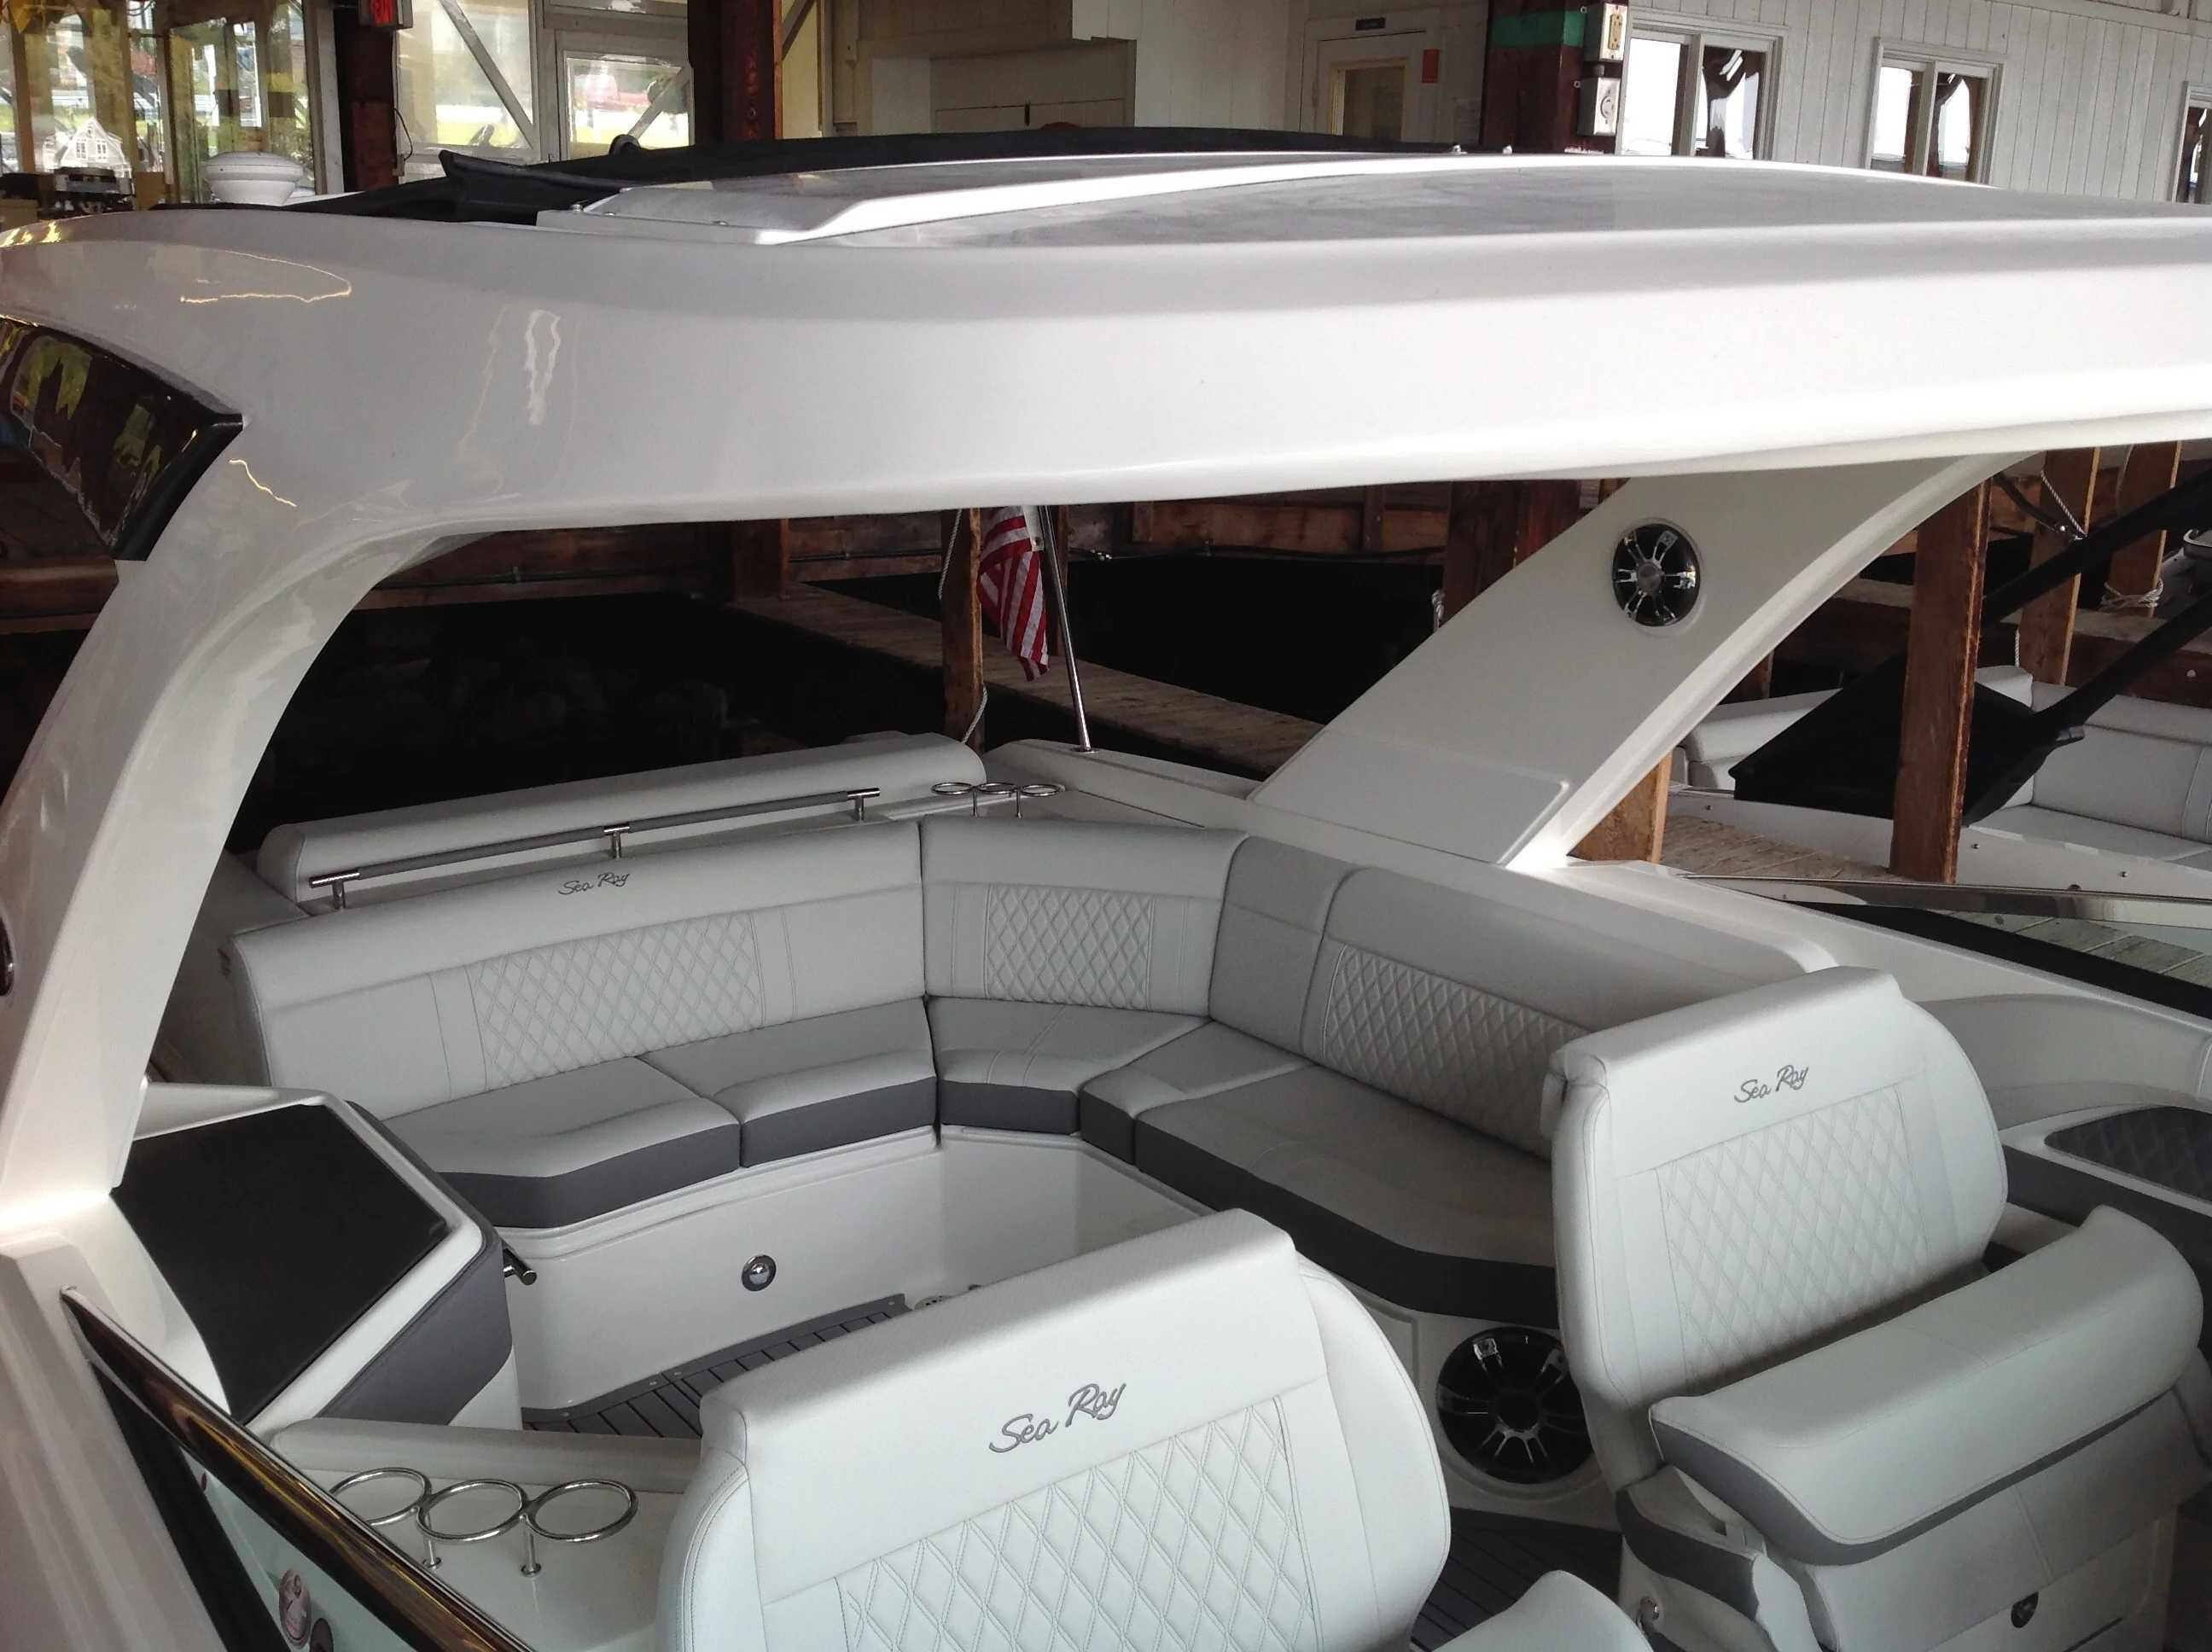 2021 Sea Ray boat for sale, model of the boat is 310 SLX & Image # 14 of 20